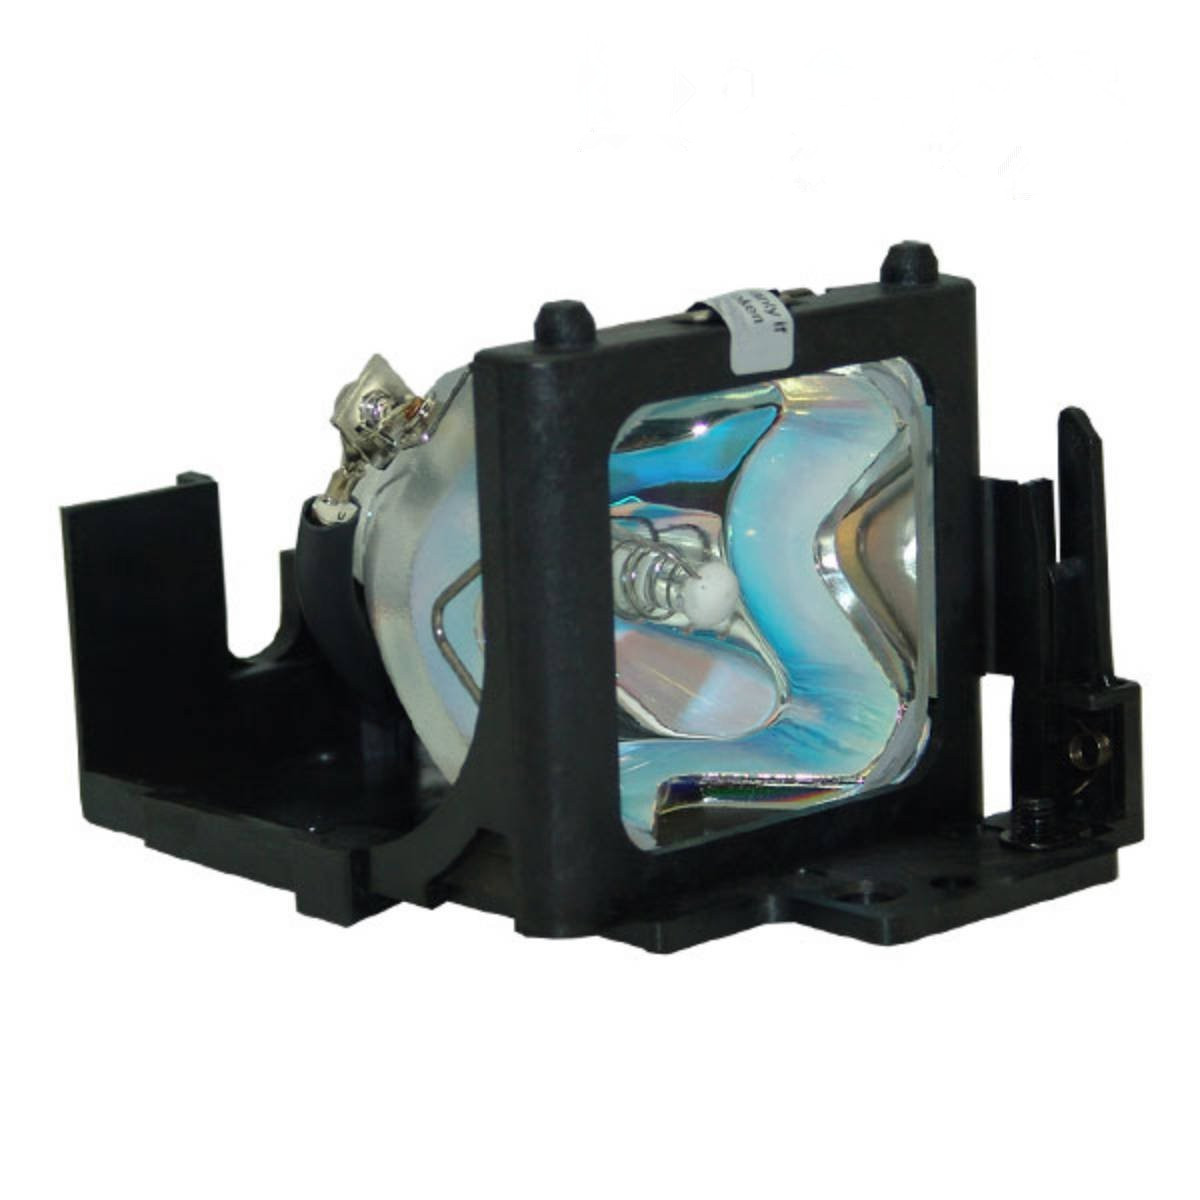 DT00301 DT-00301 for HITACHI CP-S220 CP-S220A CP-S220W CP-S270 CP-X270 PJ-LC2001 Projector Lamp Bulb With housing